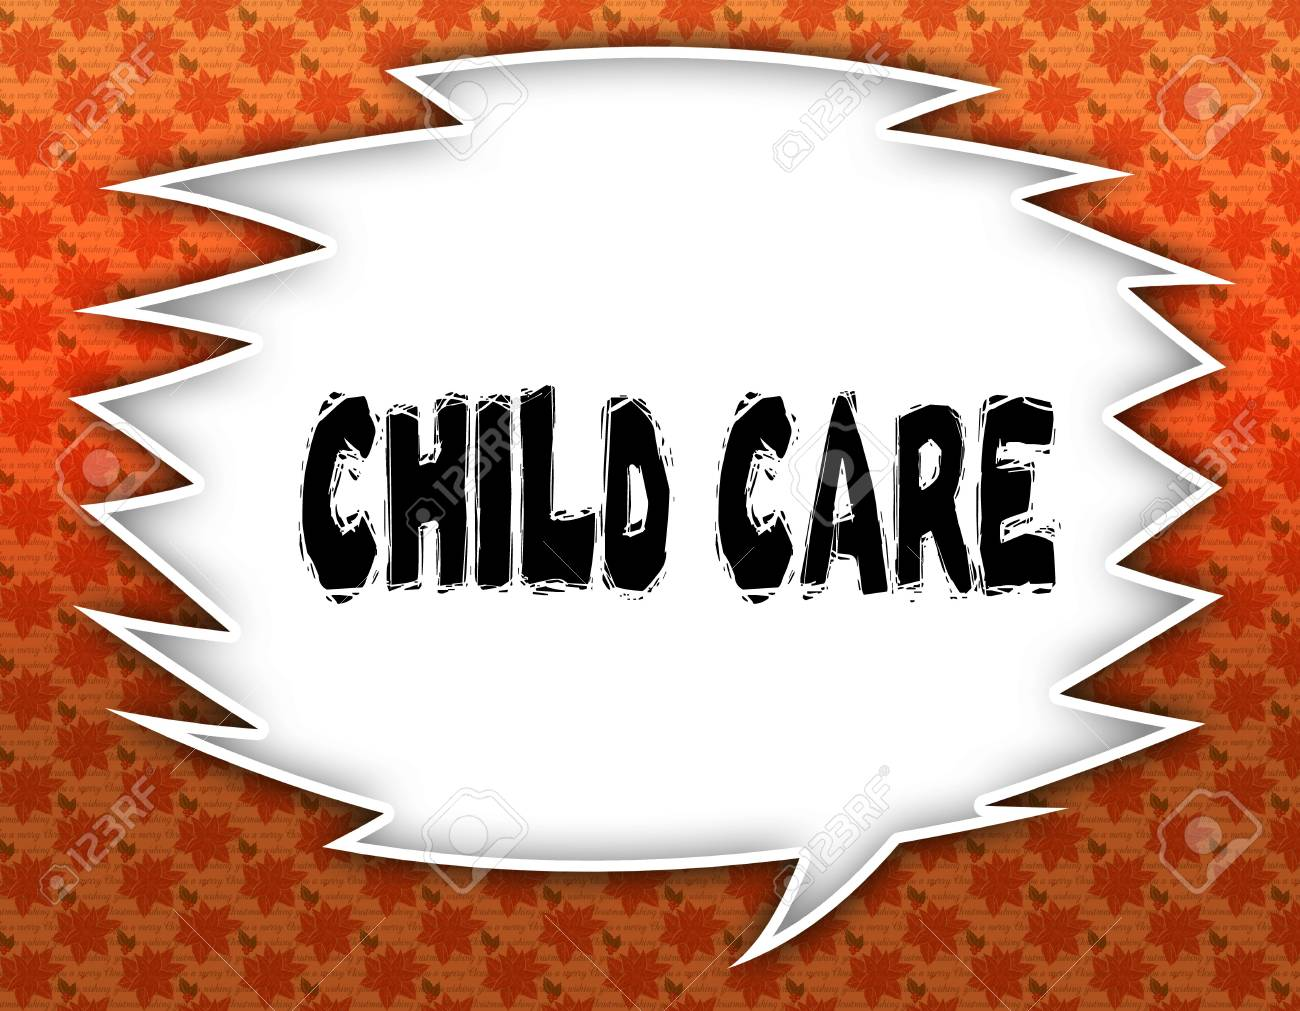 Speech Balloon With Child Care Text Flowery Wallpaper Background Stock Photo Picture And Royalty Free Image Image 92874198